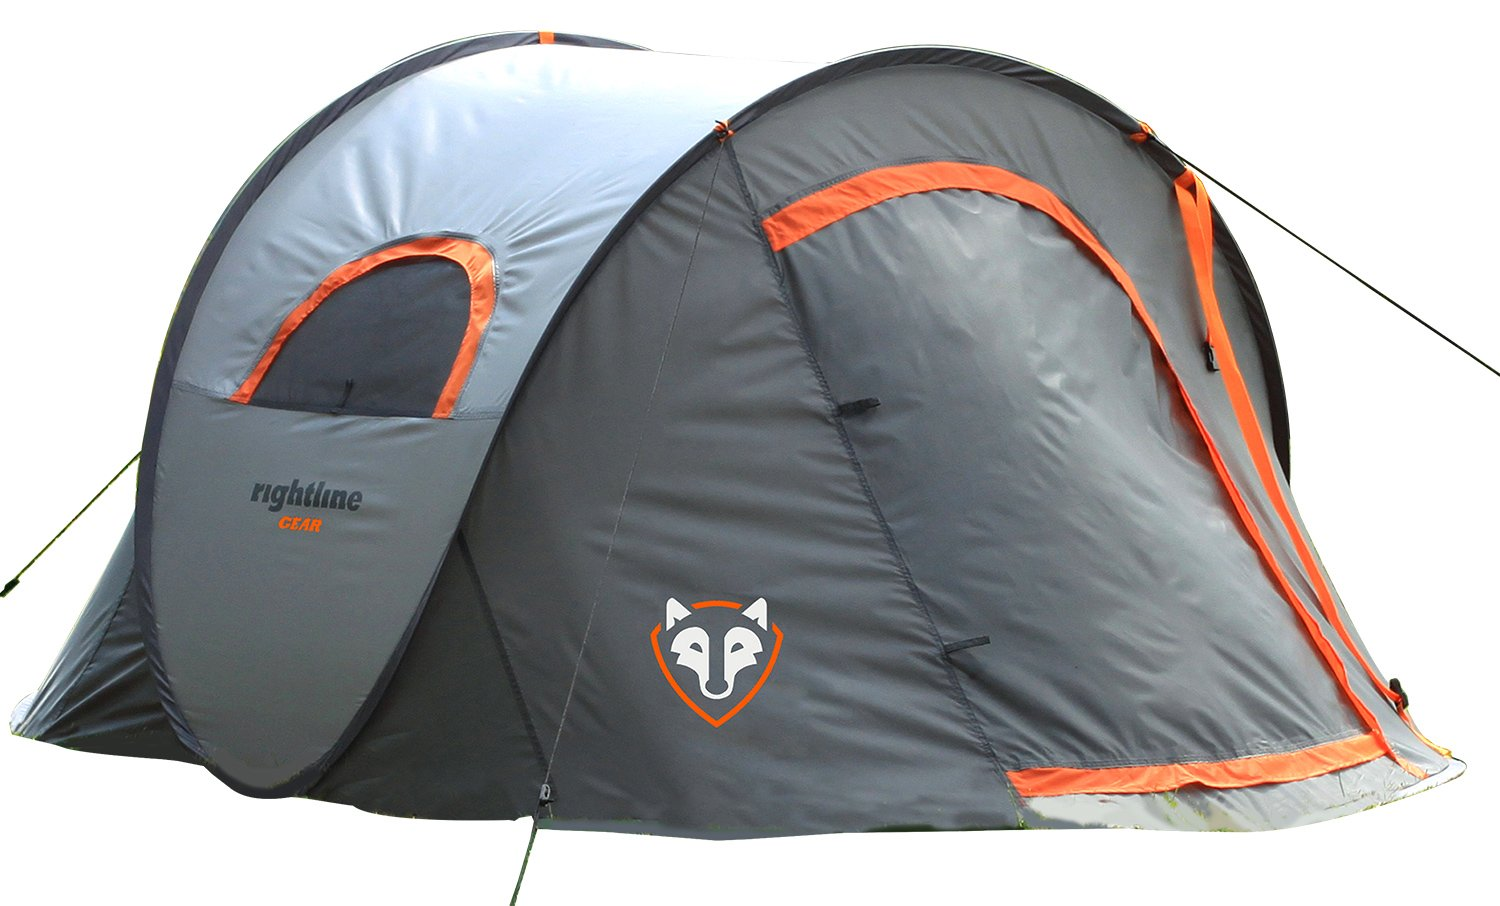 rightline gear pop up tent free shipping on suv camping gear. Black Bedroom Furniture Sets. Home Design Ideas